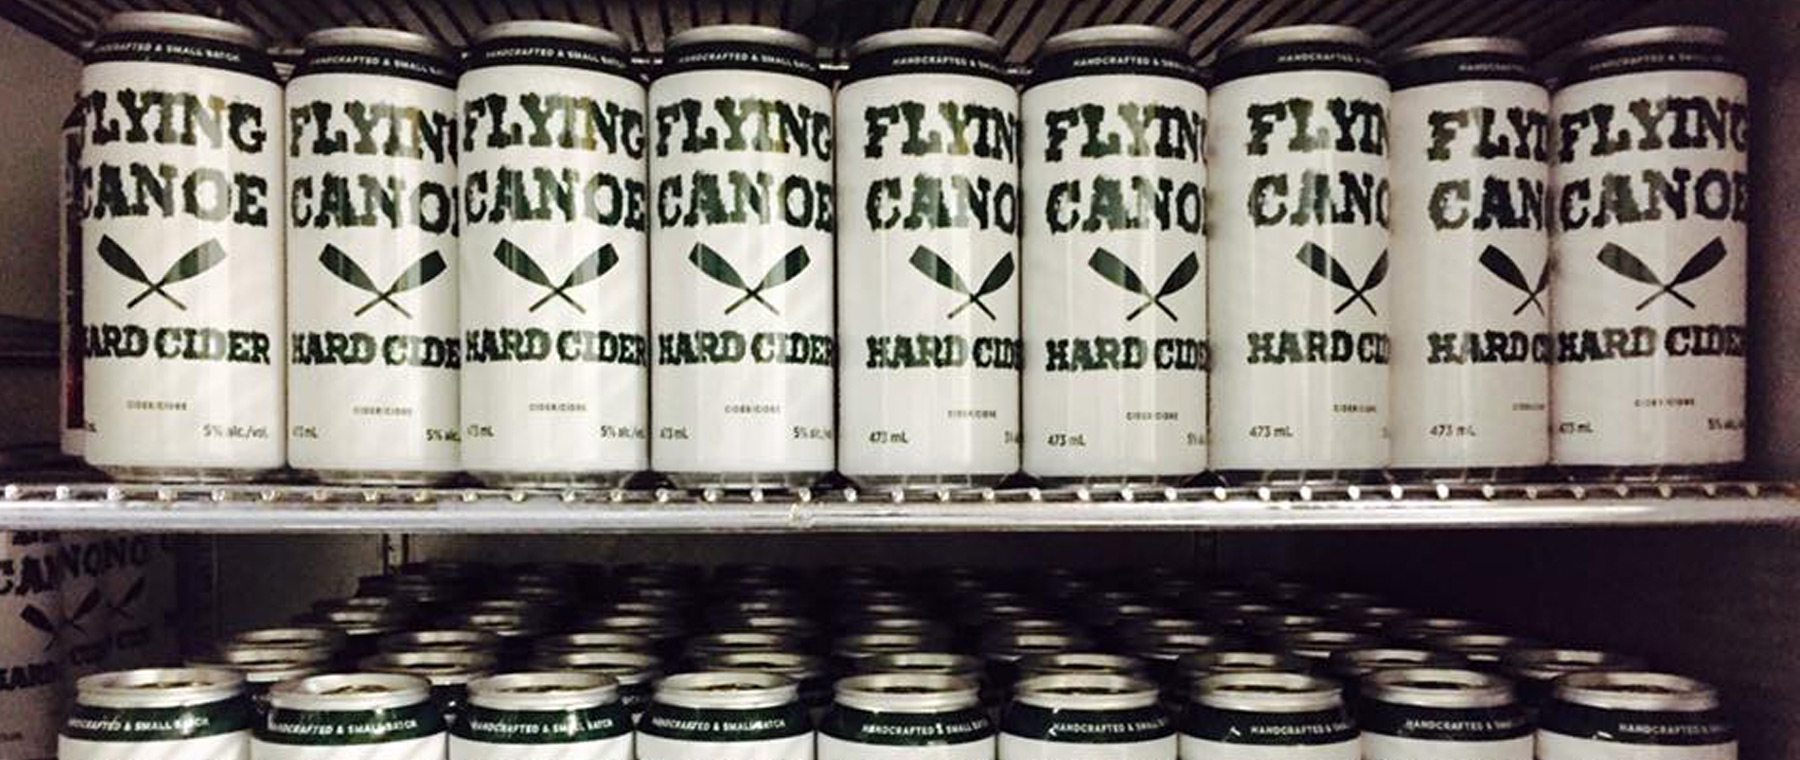 Cider lands in Ottawa via Flying Canoe